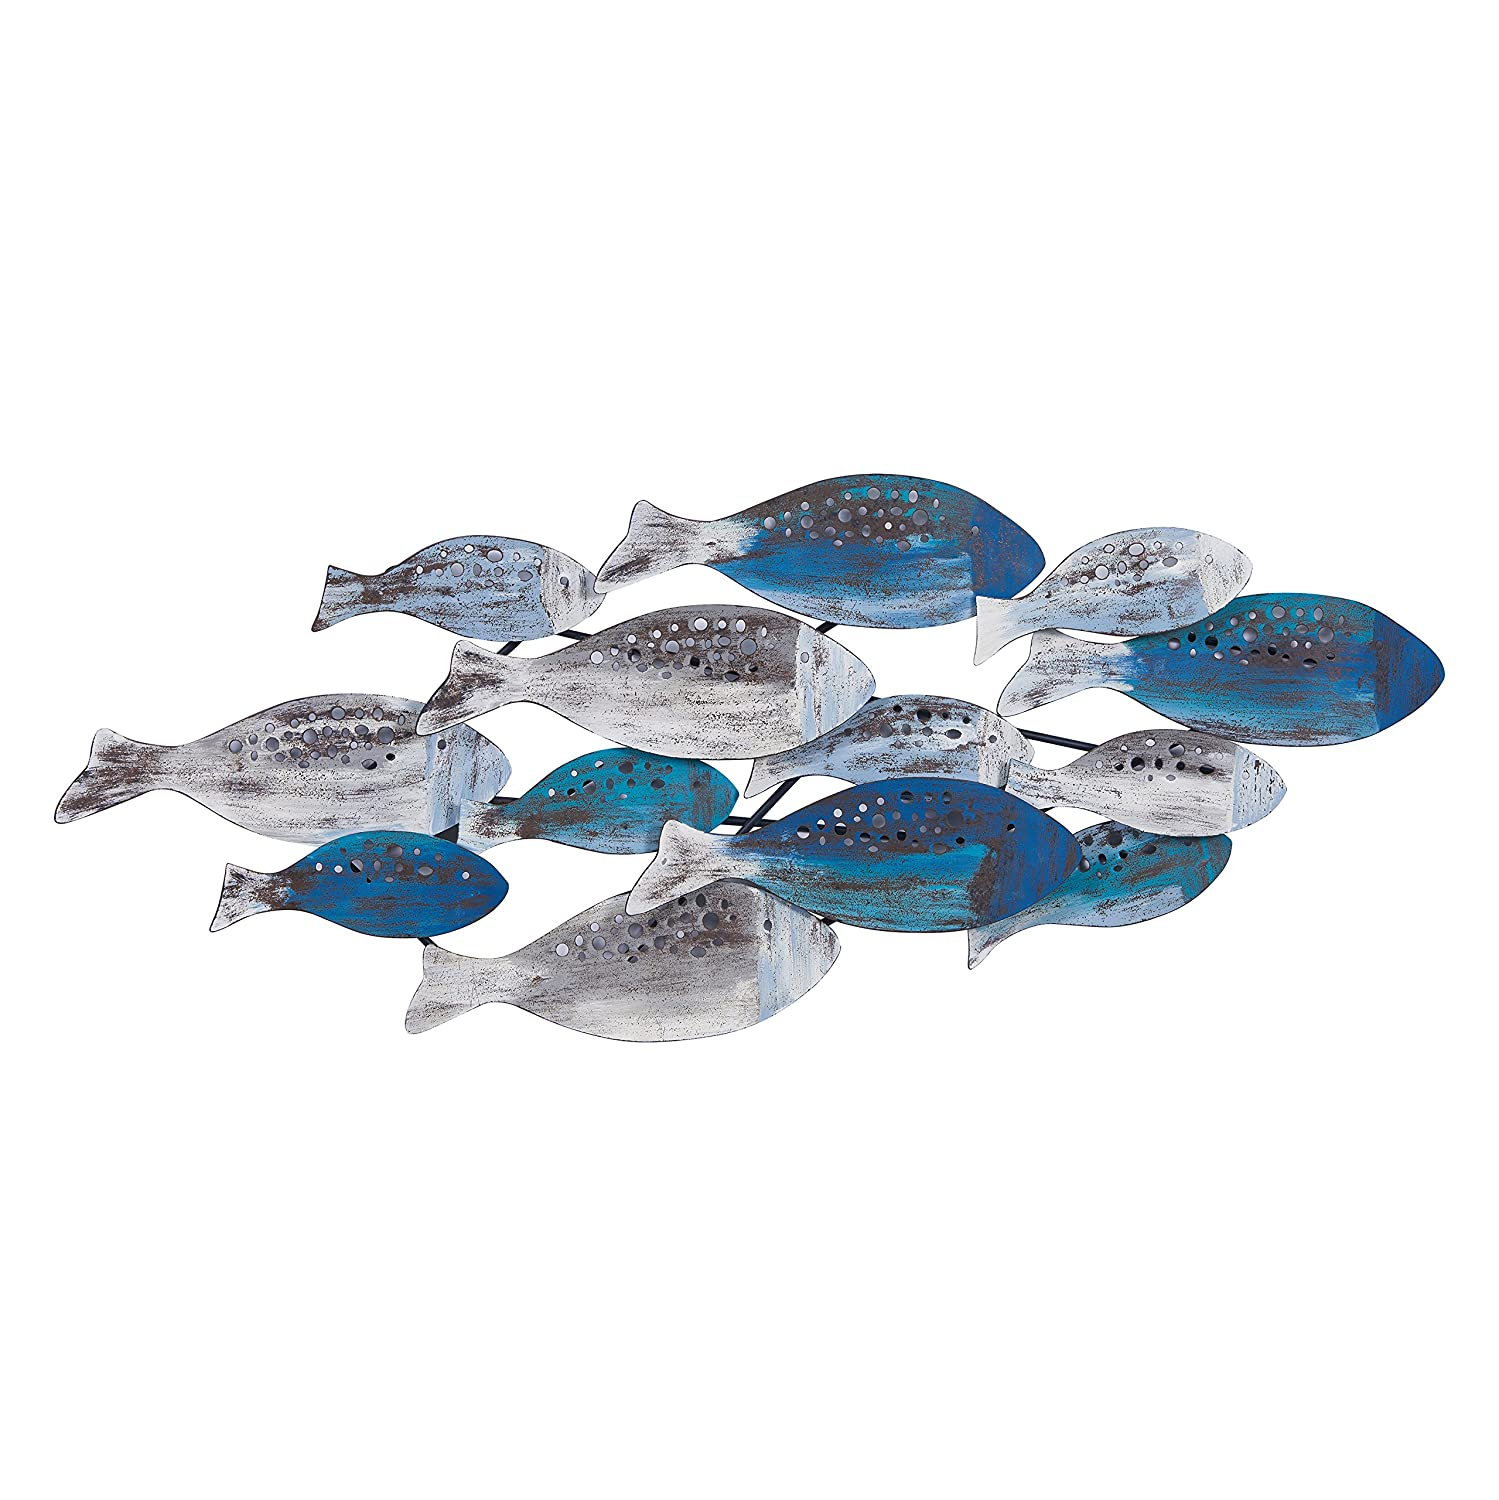 Danya B. FHB6563 School of Fish Modern Metal Wall Art – Perfect for Coastal, Nautical, Beach, or Boat Décor